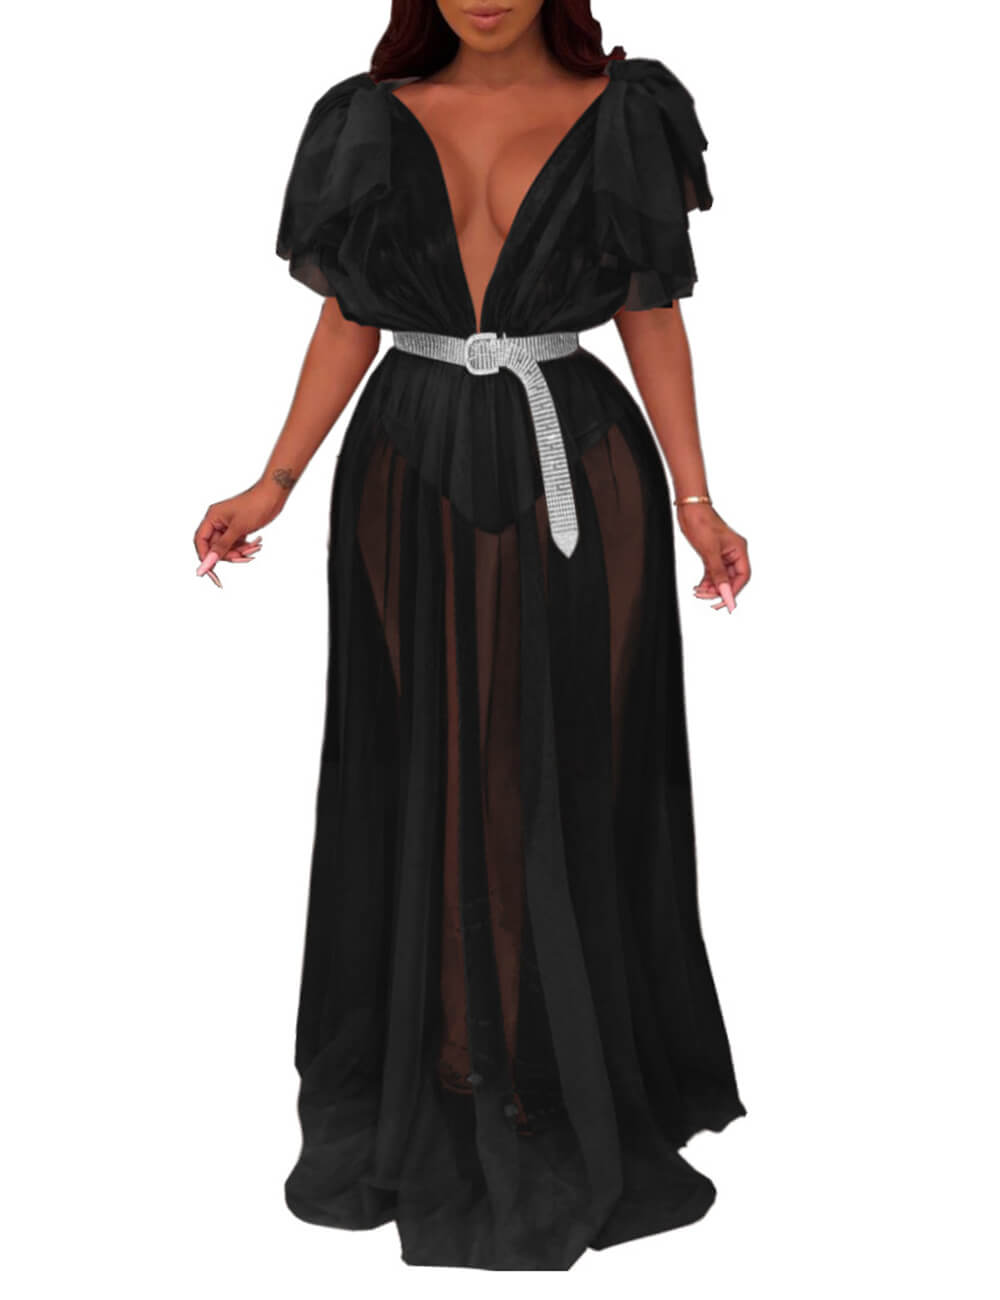 Women's See Through Mesh Sheer Maxi Party Club Dress Deep V Neck Ruffle Sleeve Ball Gown Plus Size Beach Cover Ups